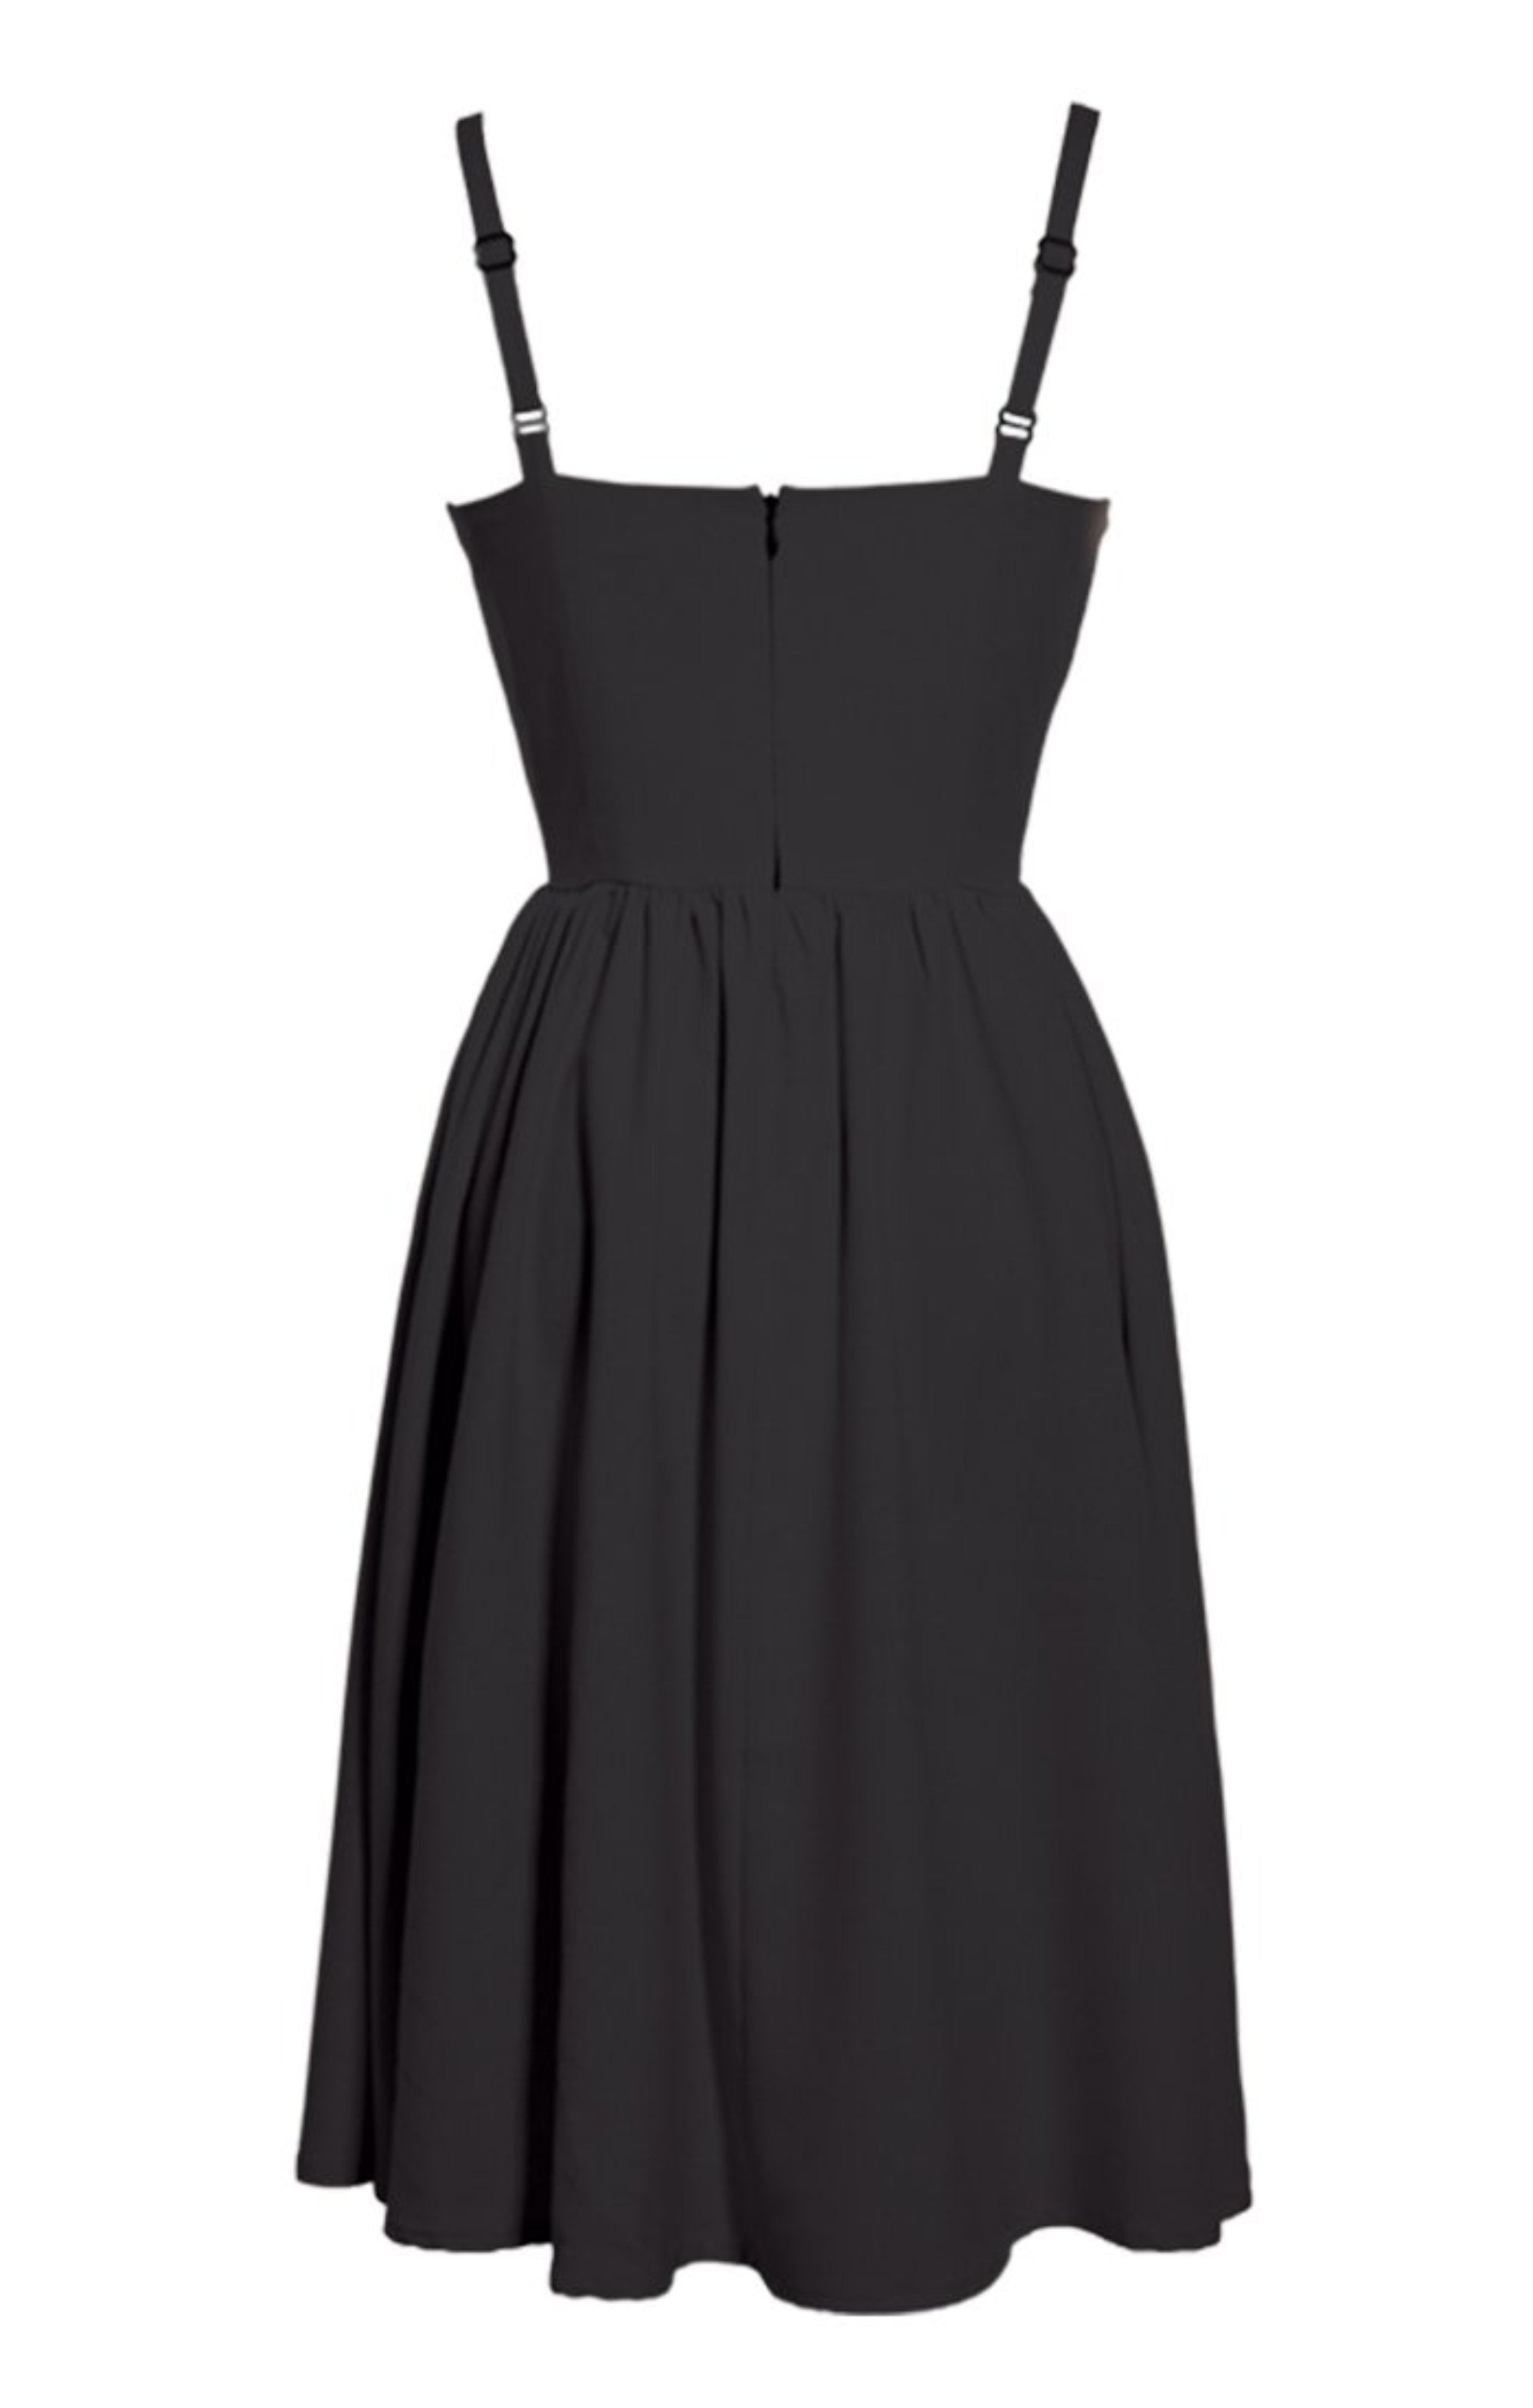 The LUCILLE DRESS - BLACK